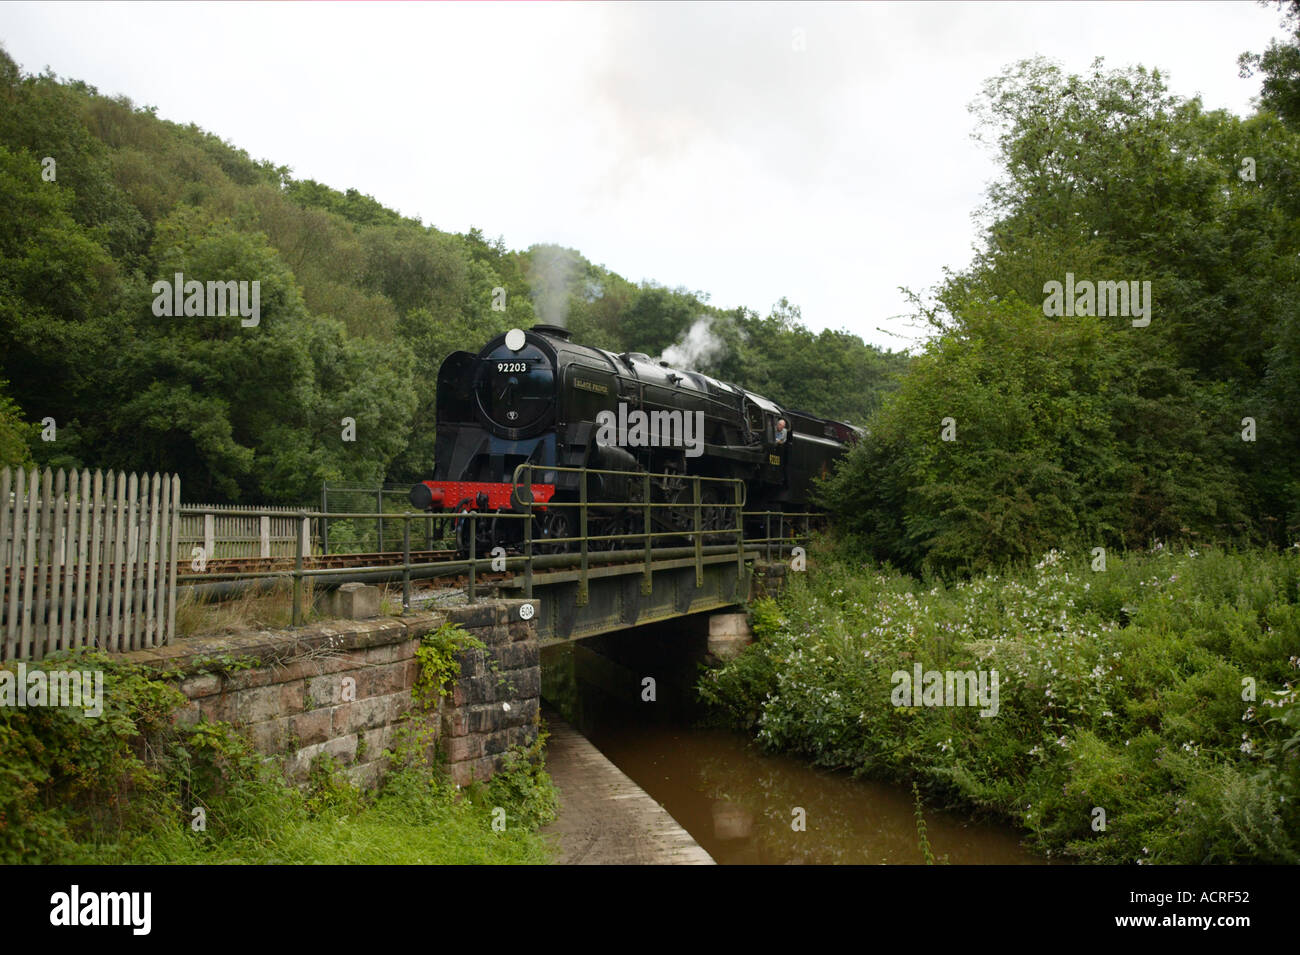 Churnet Valley Railway Steam train arriving at station - Stock Image